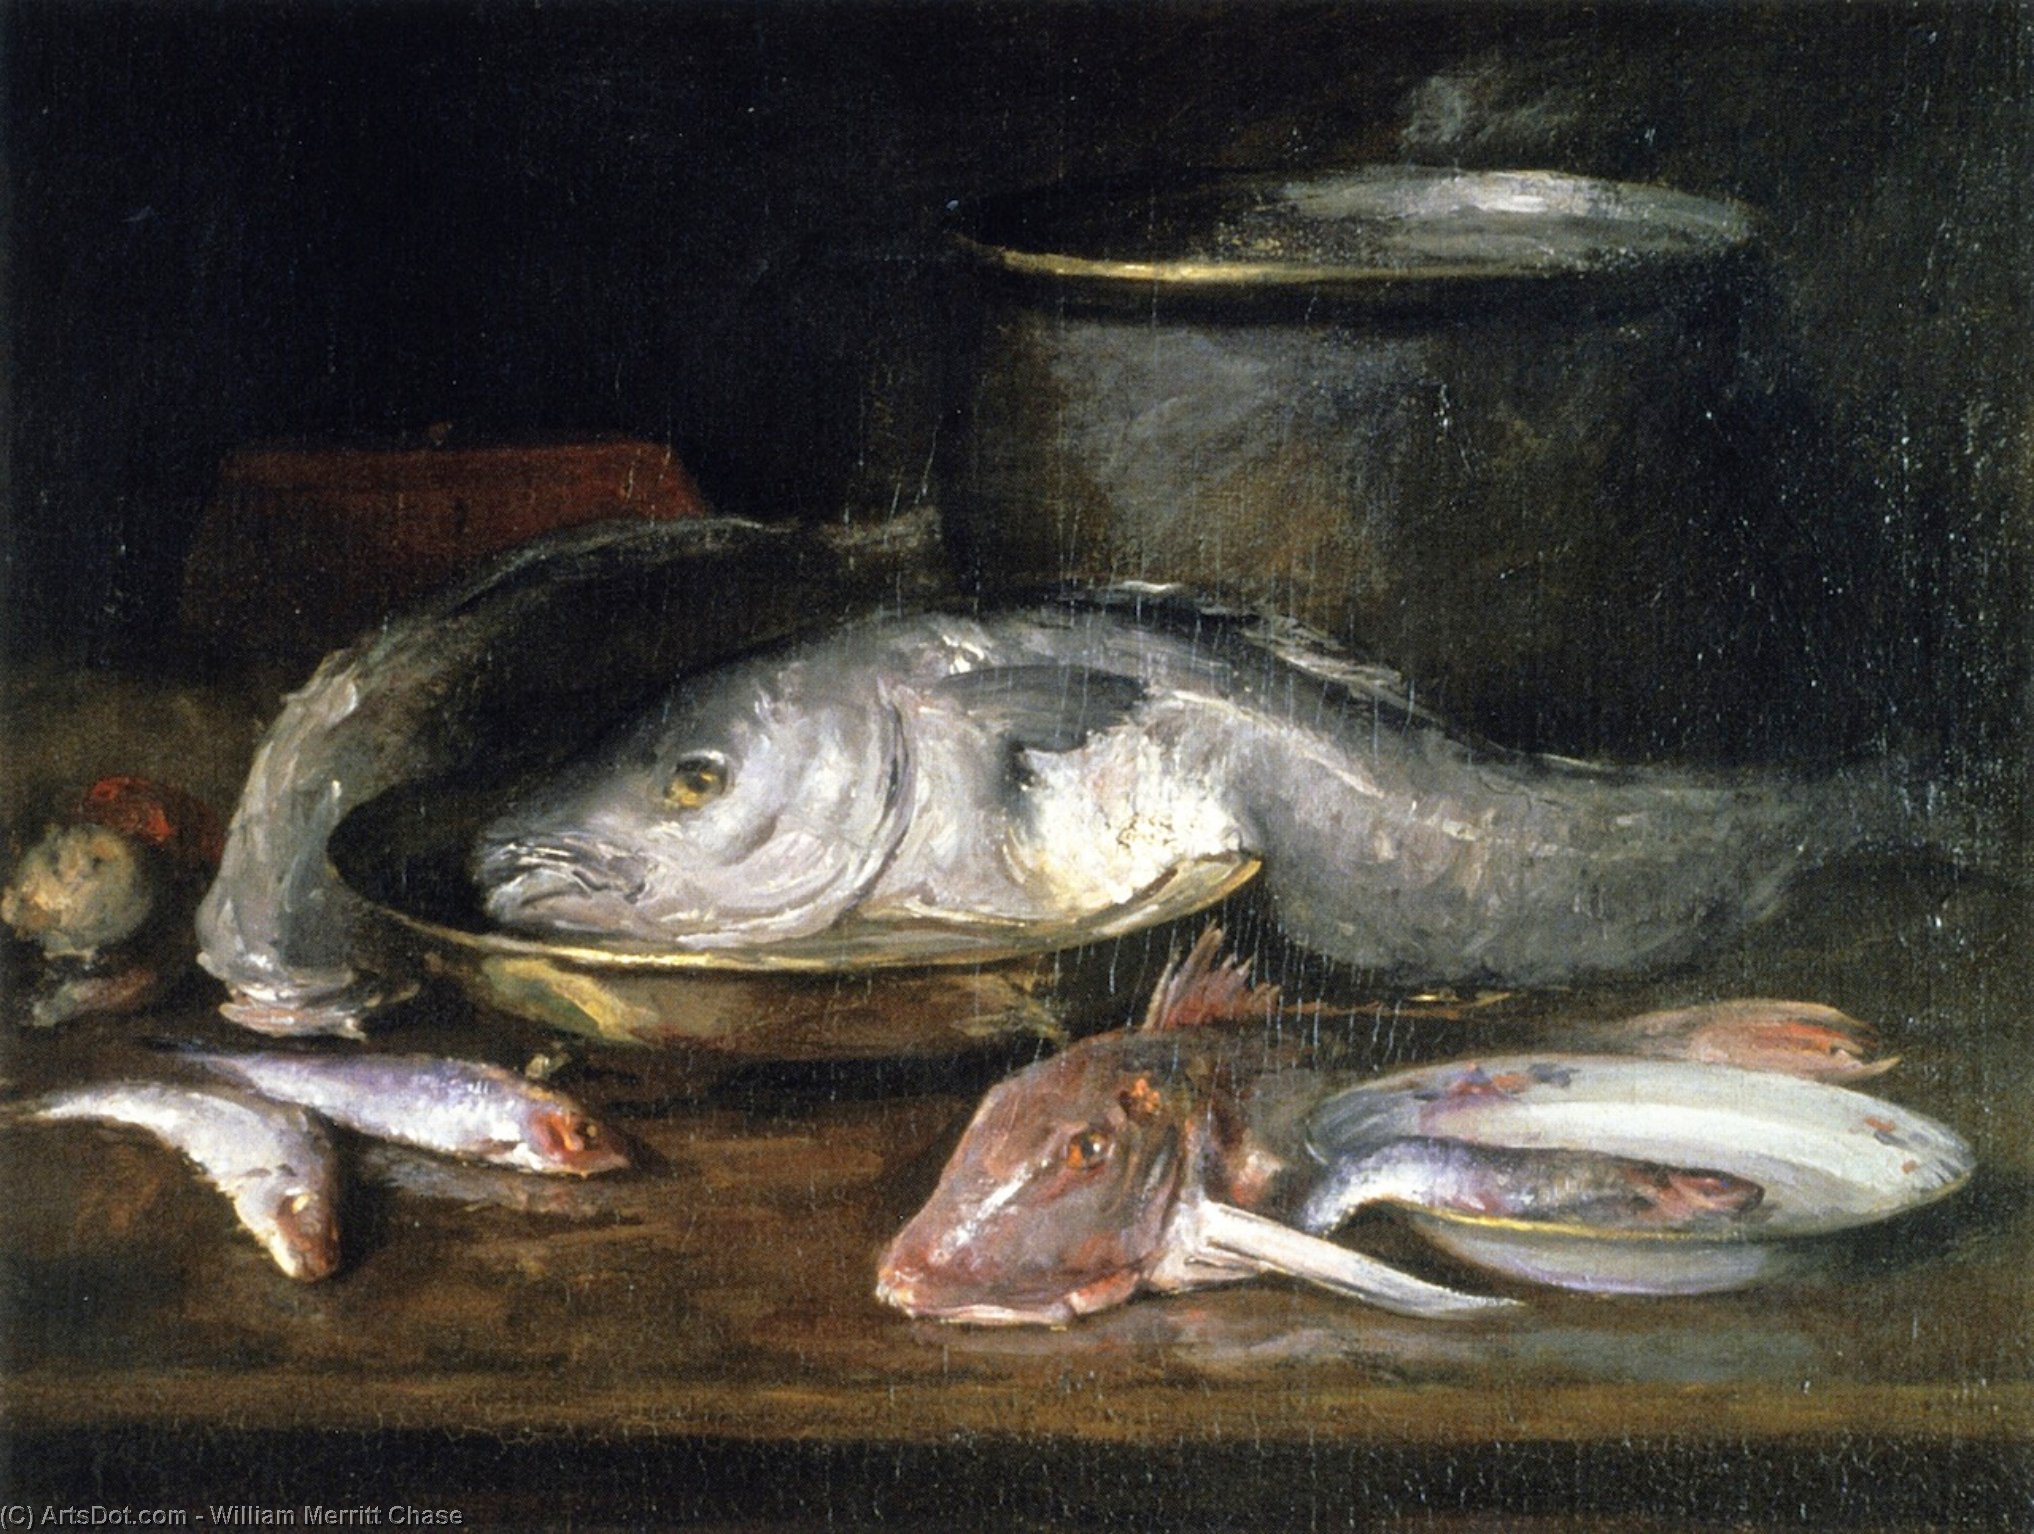 Still Life with Fish and Pot, Oil On Canvas by William Merritt Chase (1849-1916, United States)